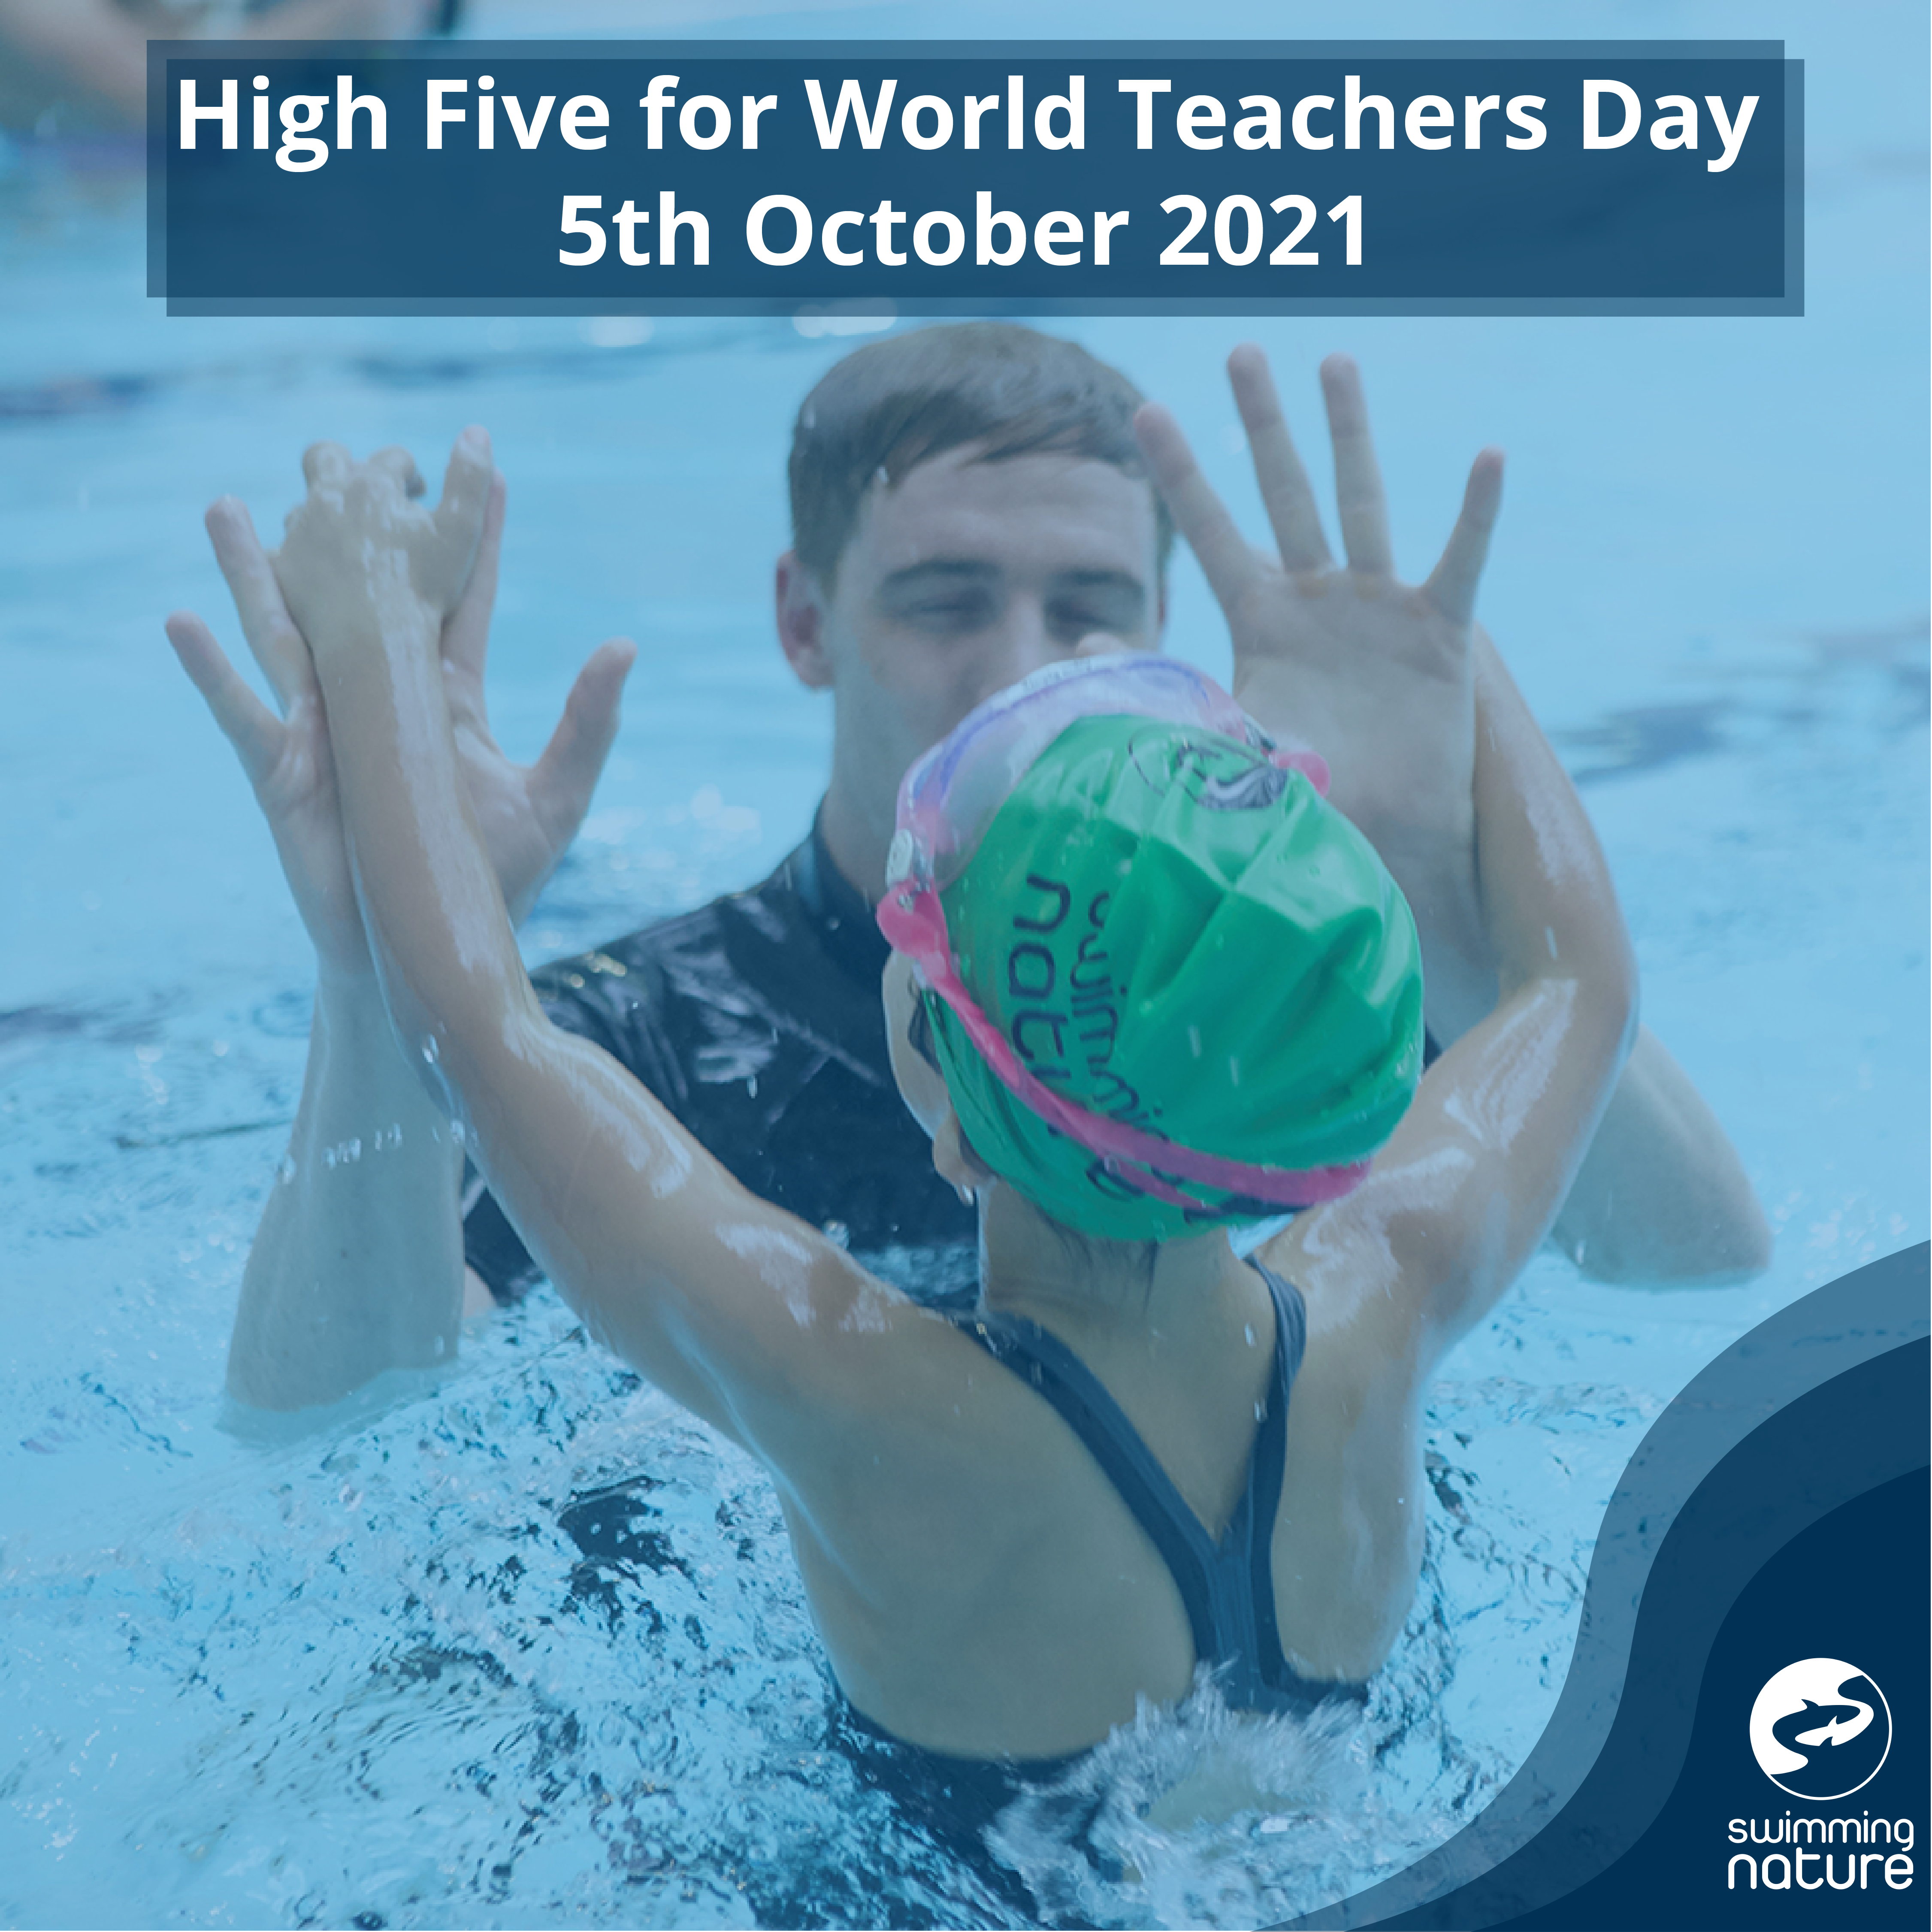 HIGH FIVE FOR SWIMMING NATURE'S SWIMMING TEACHERS ON WORLD TEACHERS' DAY